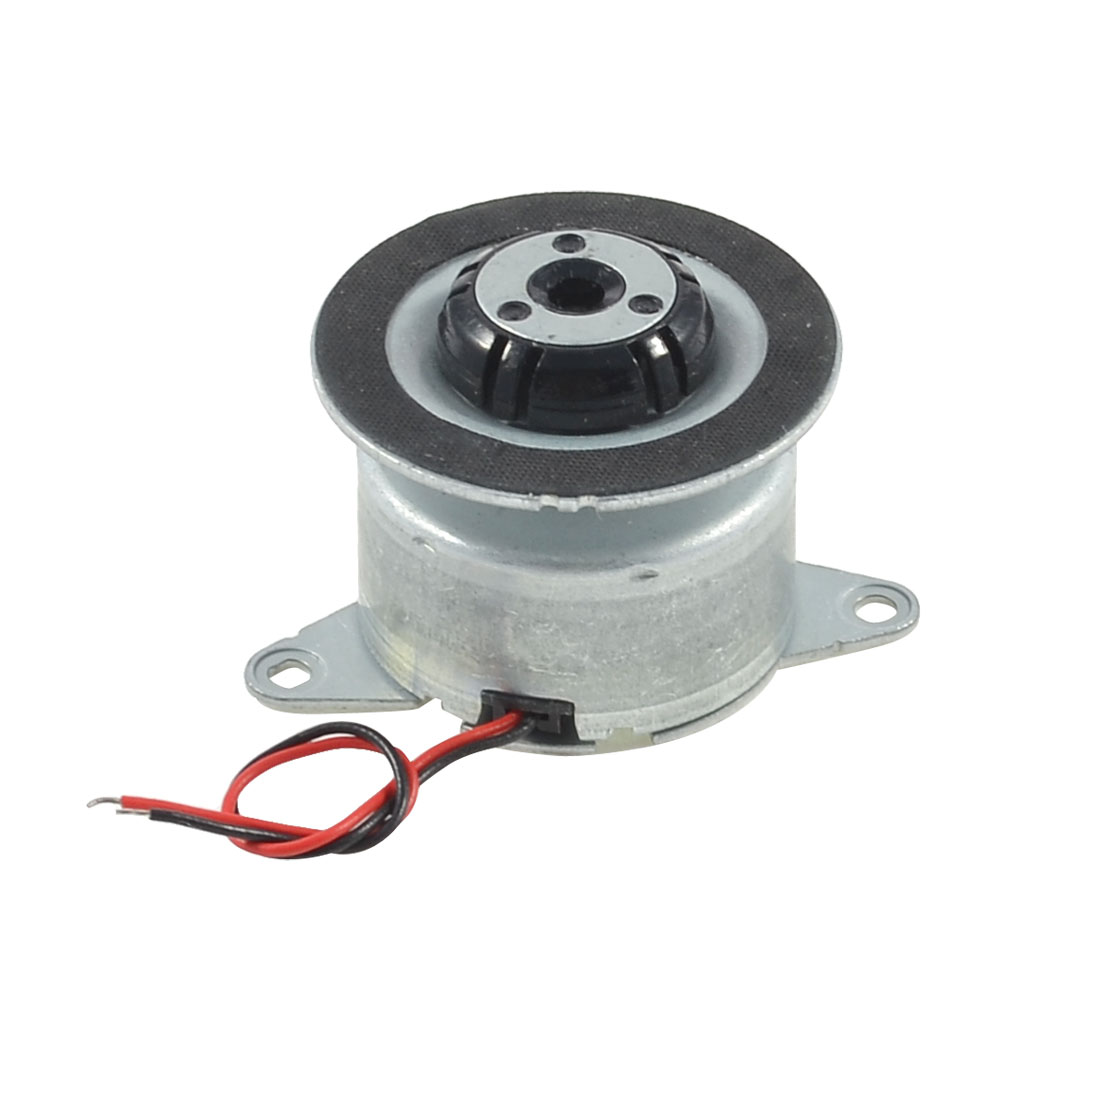 DC 6V 6000RPM 0.02A Disc Drive Micro Spindle Motor for DVD Player